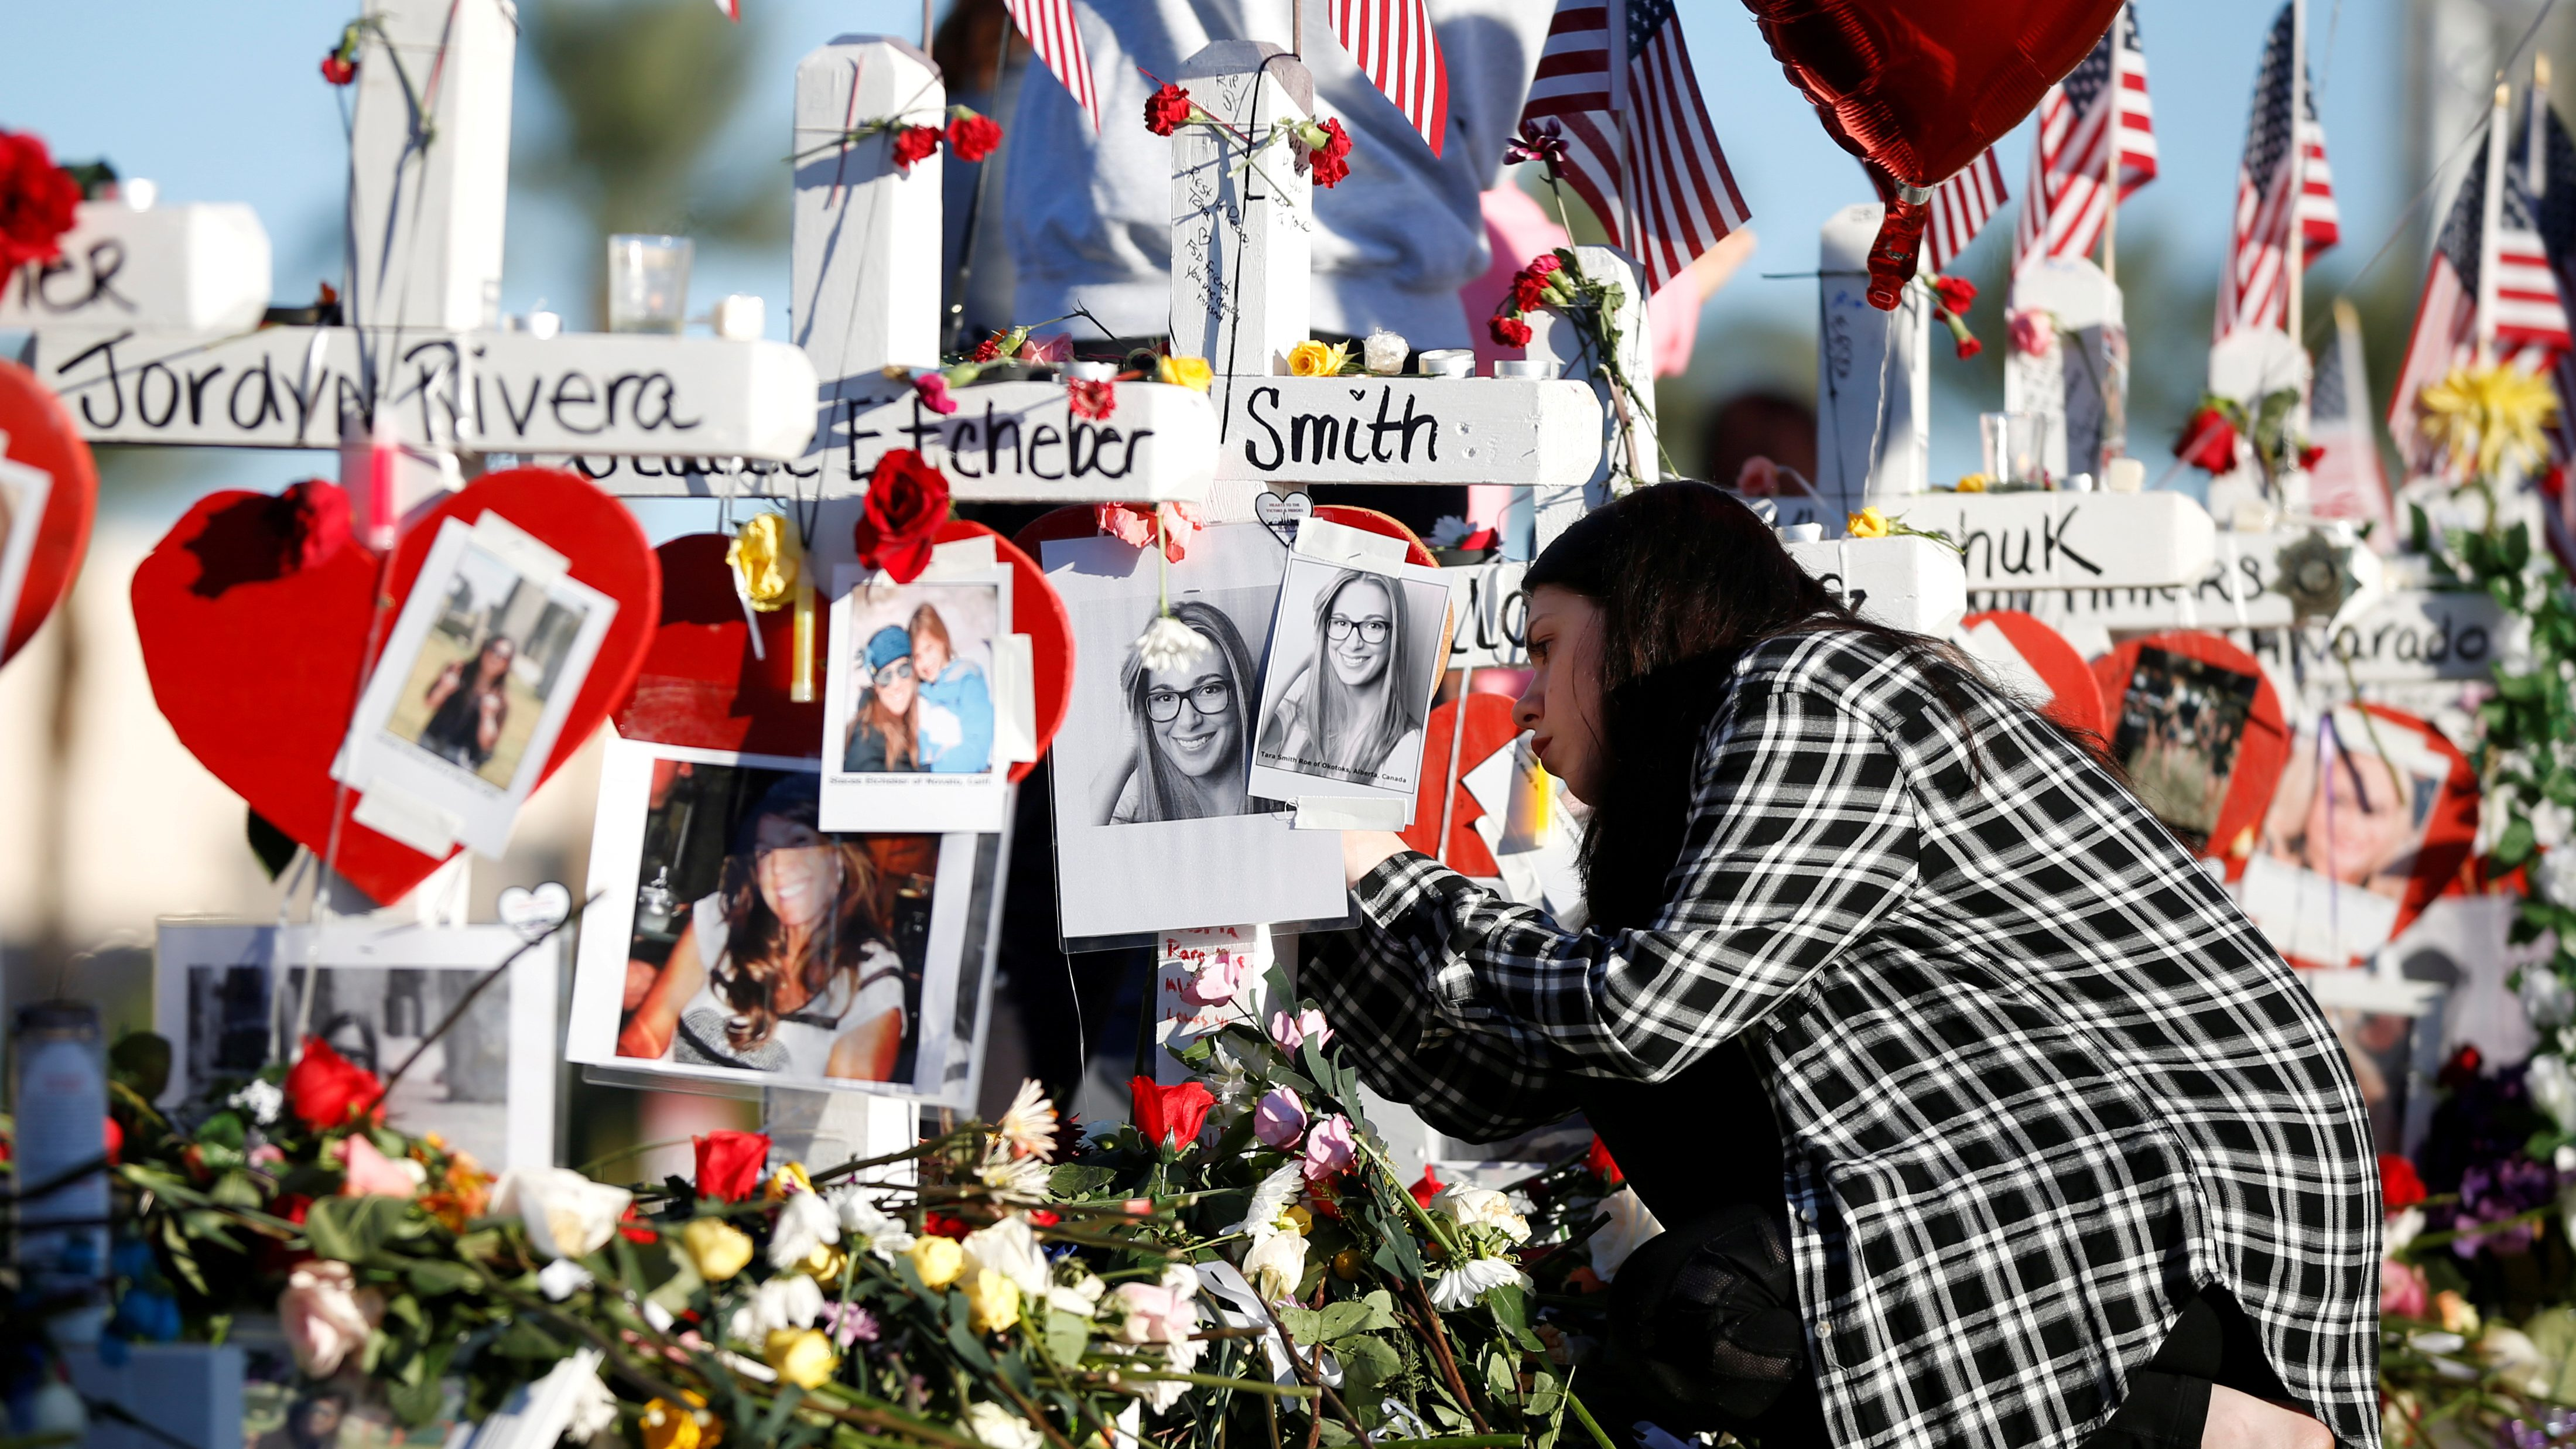 A woman writes a message on one of the white crosses set up for the victims of the Route 91 Harvest music festival mass shooting in Las Vegas, Nevada, U.S., October 7, 2017. REUTERS/Chris Wattie NO RESALES. NO ARCHIVE     TPX IMAGES OF THE DAY - RC146FB0A140